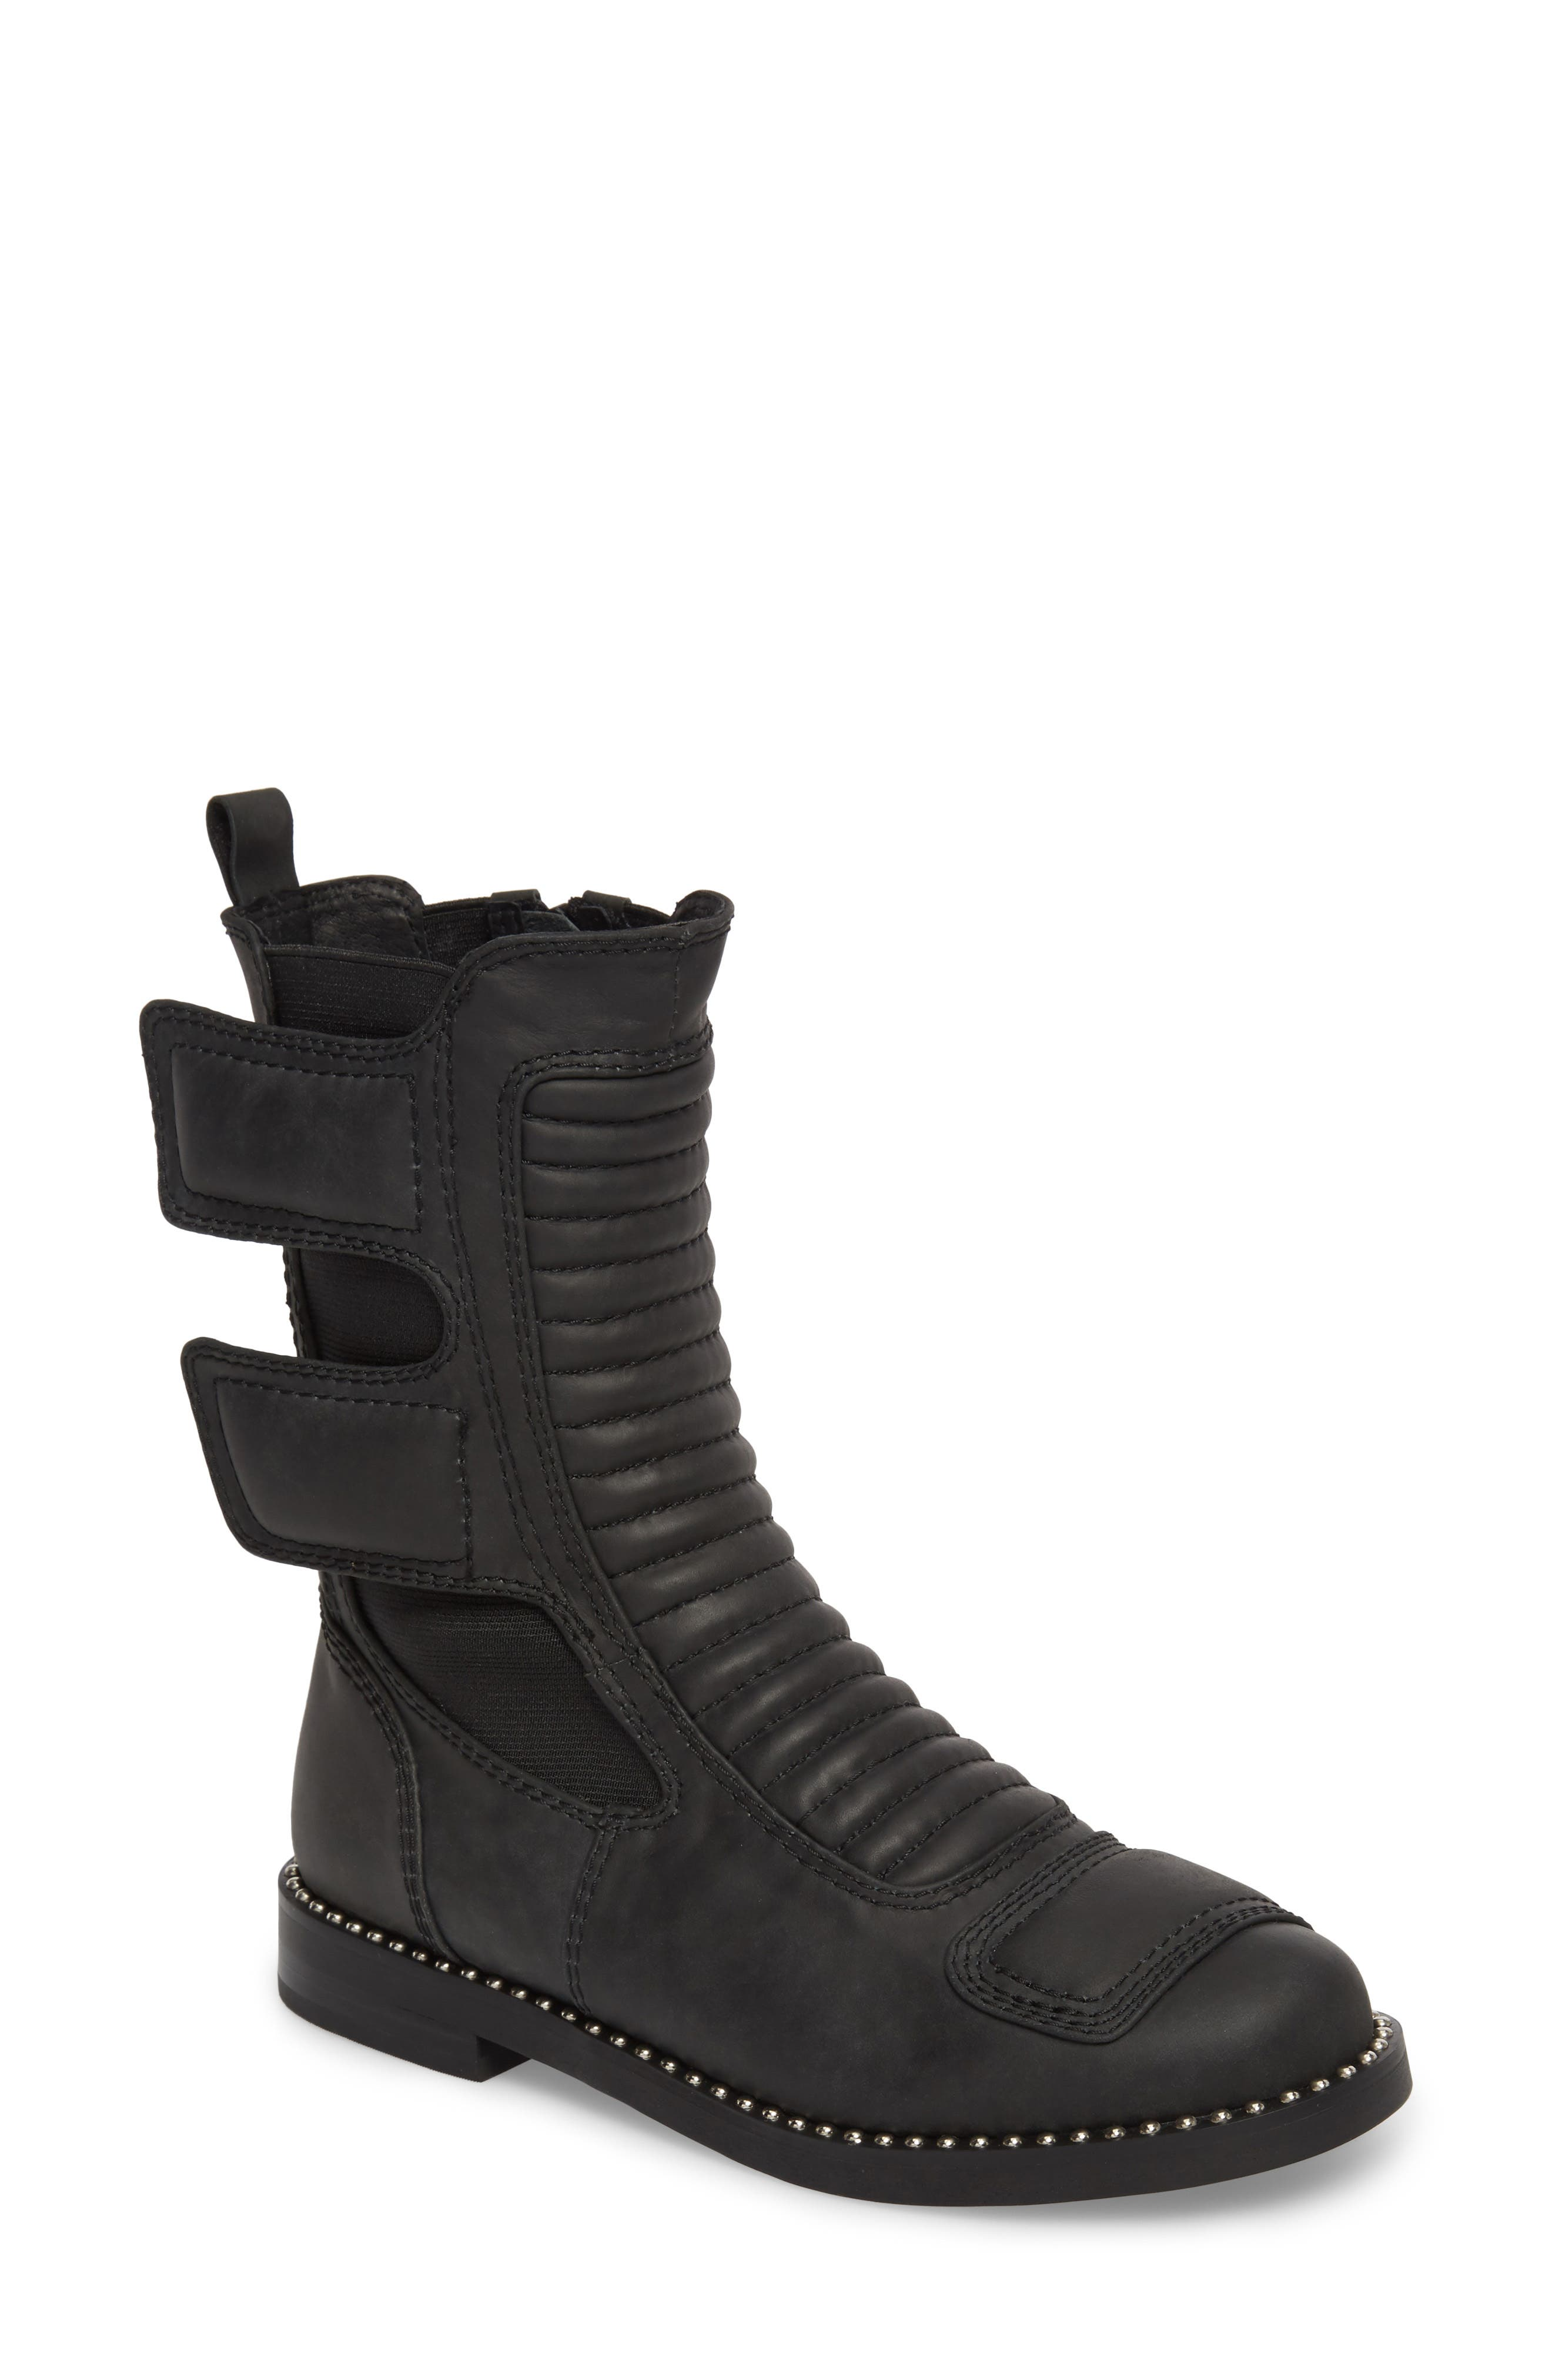 Alternate Image 1 Selected - Jeffrey Campbell Police Boot (Women)